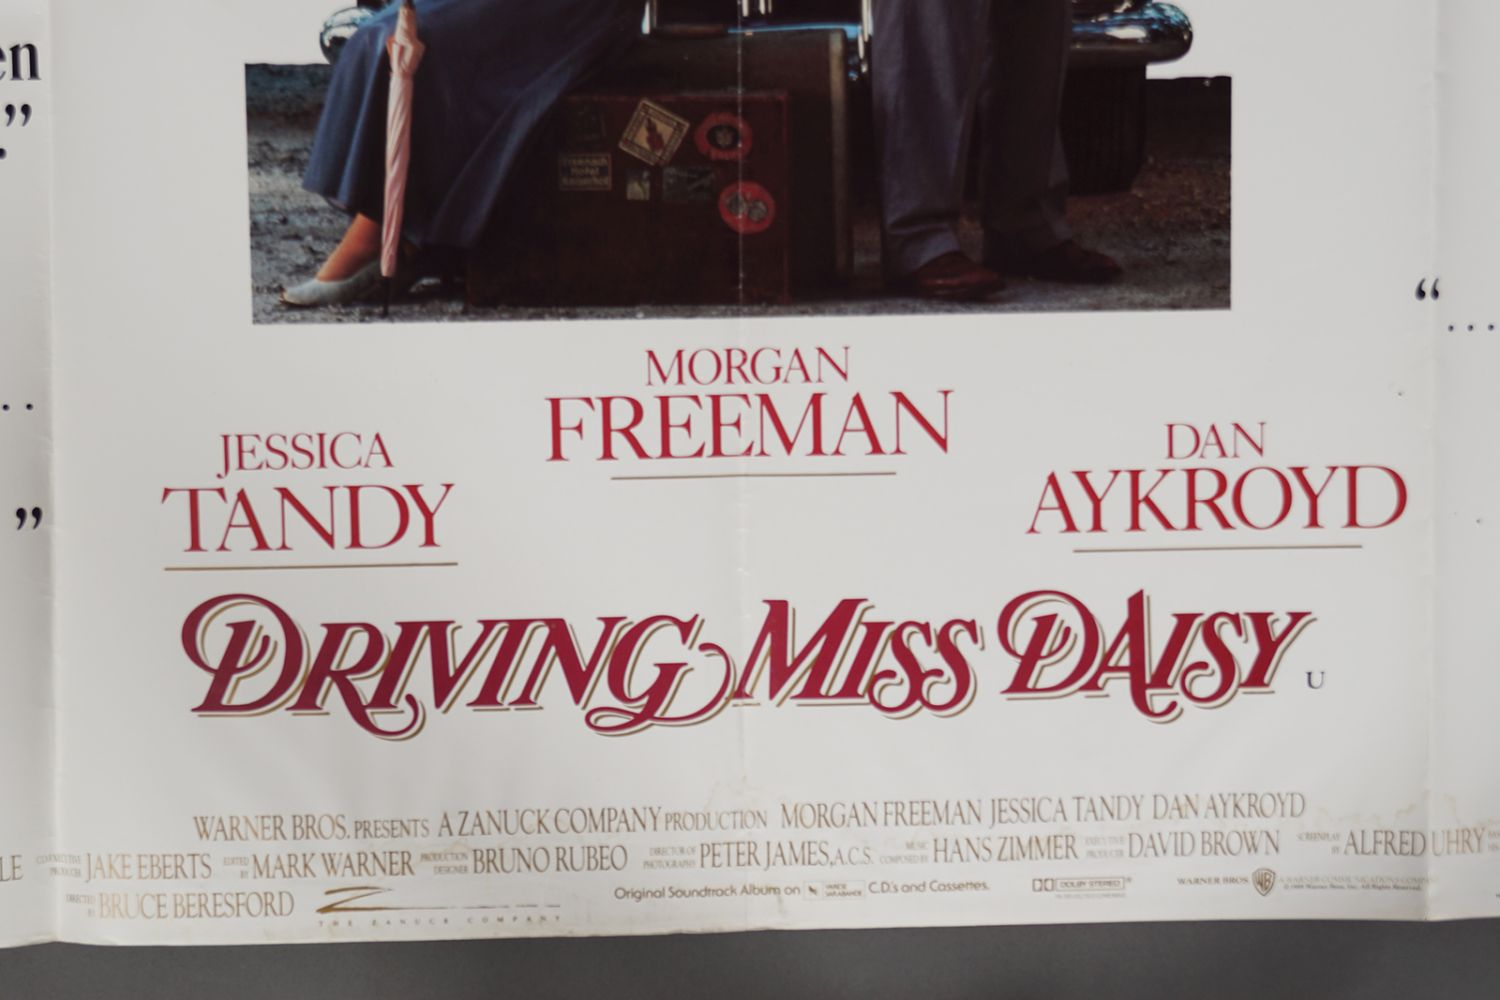 DRIVING MISS DAISY - Image 2 of 3